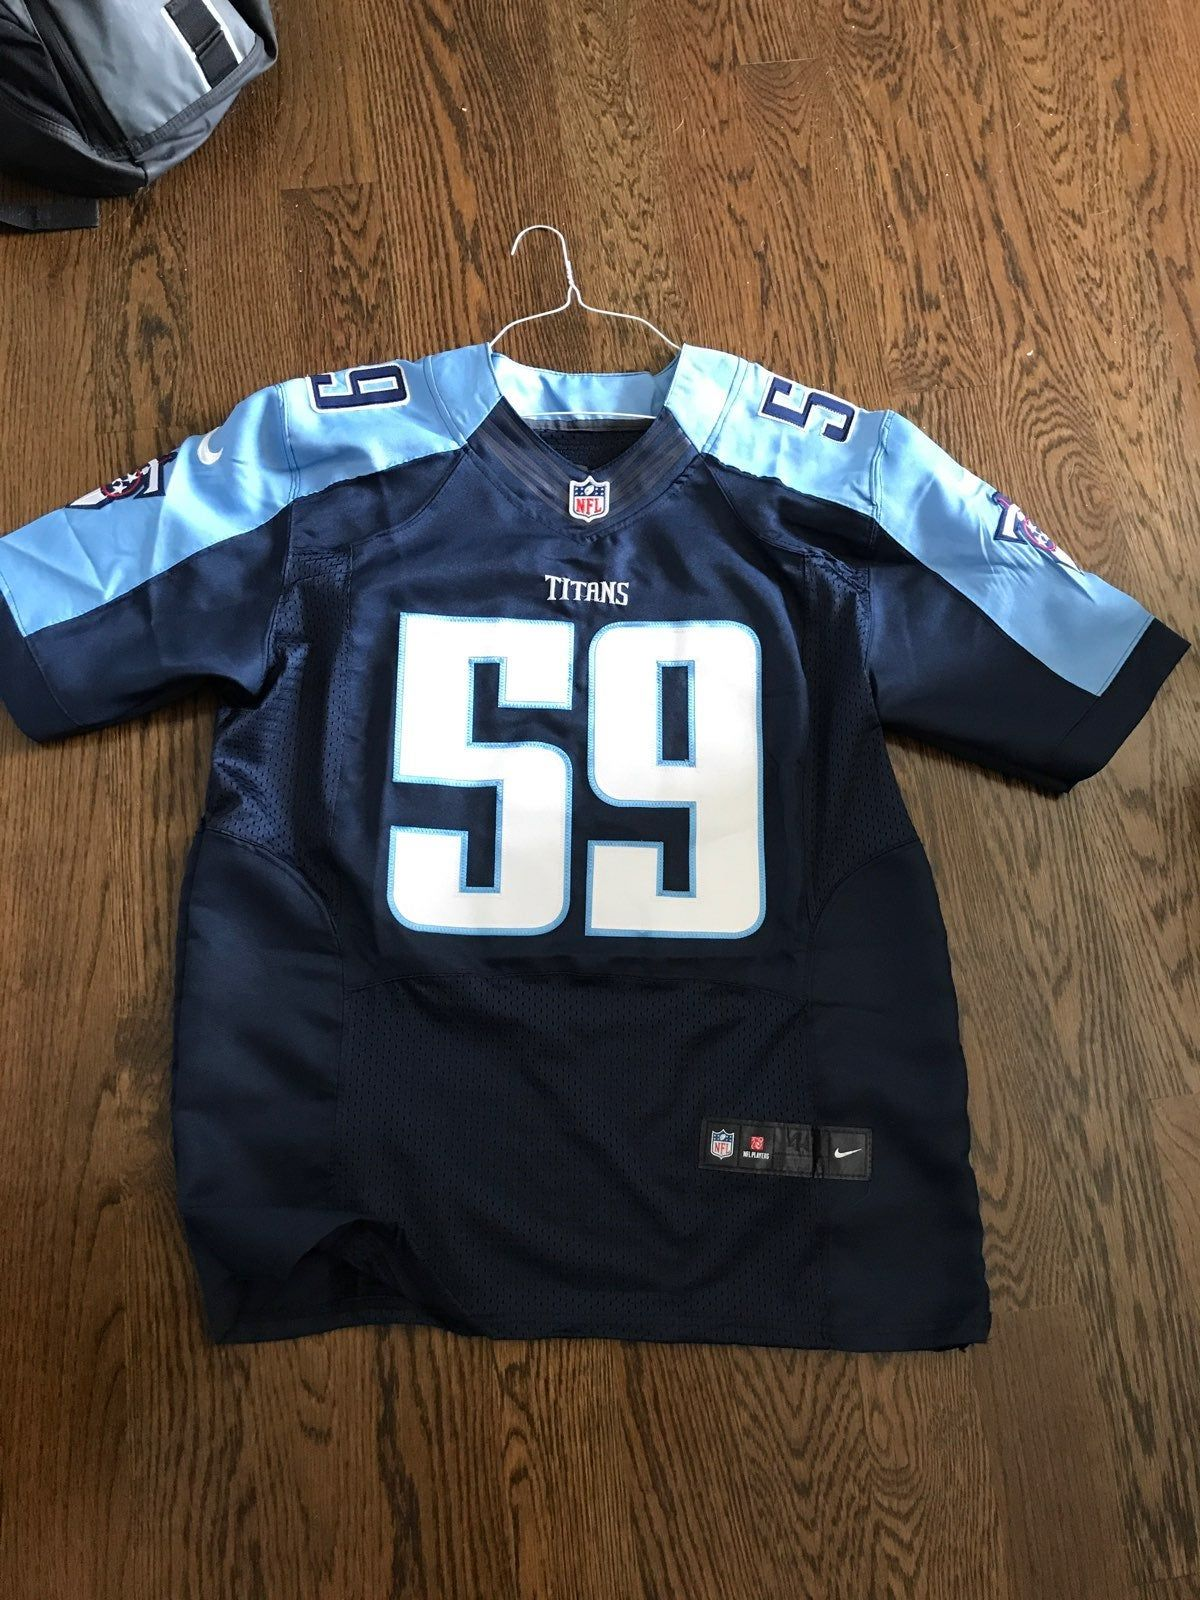 best loved 0d5bc f80b8 Tennessee Titans 2018 NFL Jersey. Wesley woodyard #59. No ...